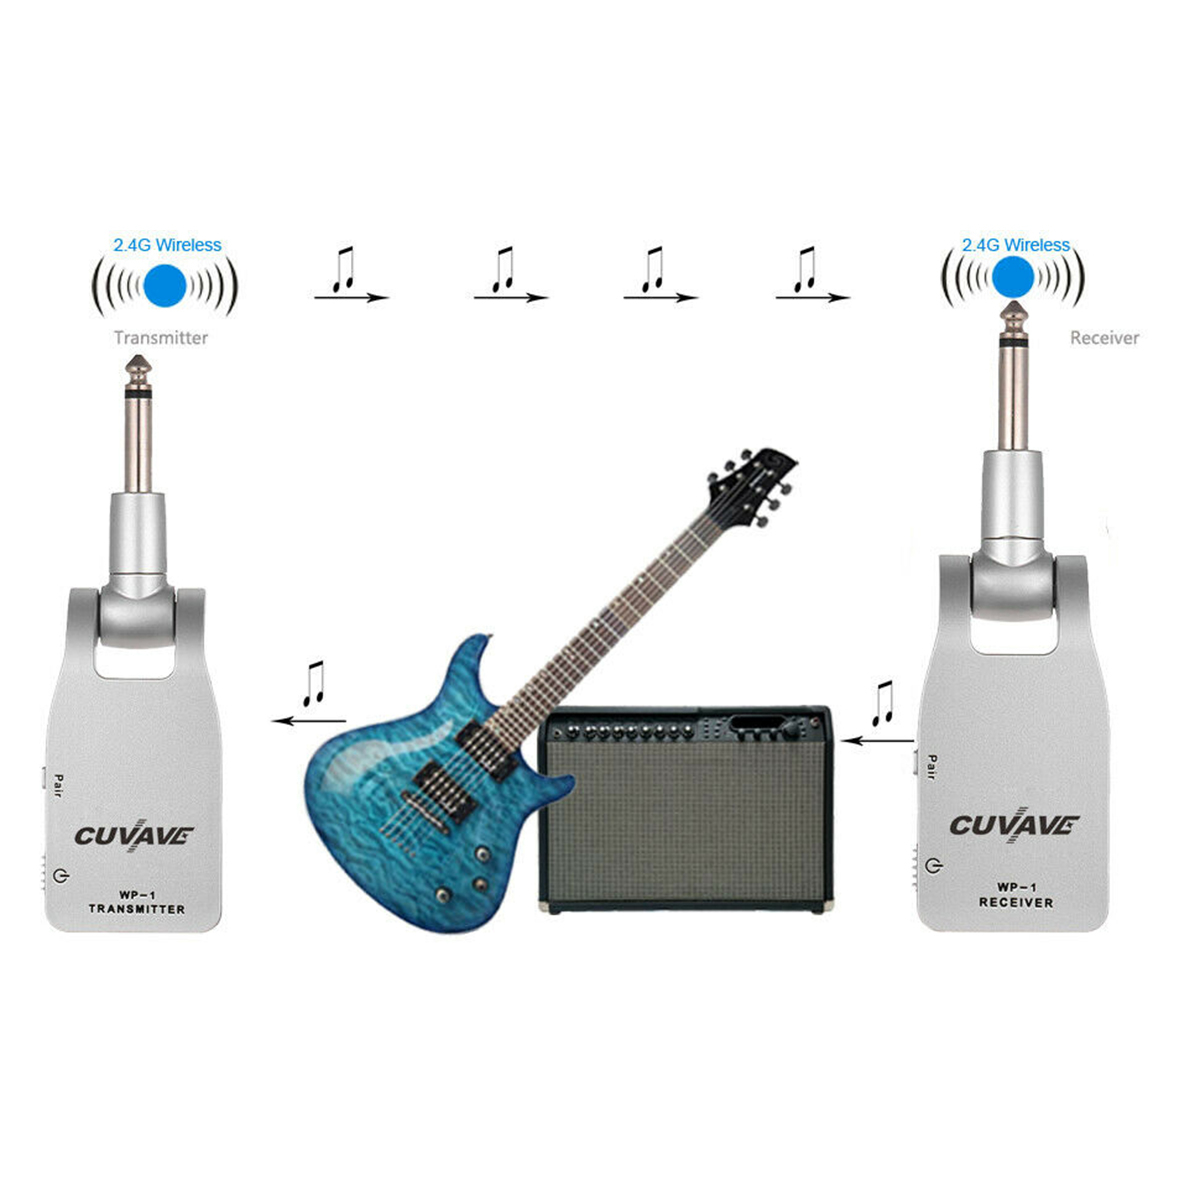 CUVAVE WP-1 Wireless Audio Transmitter Receiver System for Electric Guitar Bass Musical Instrument